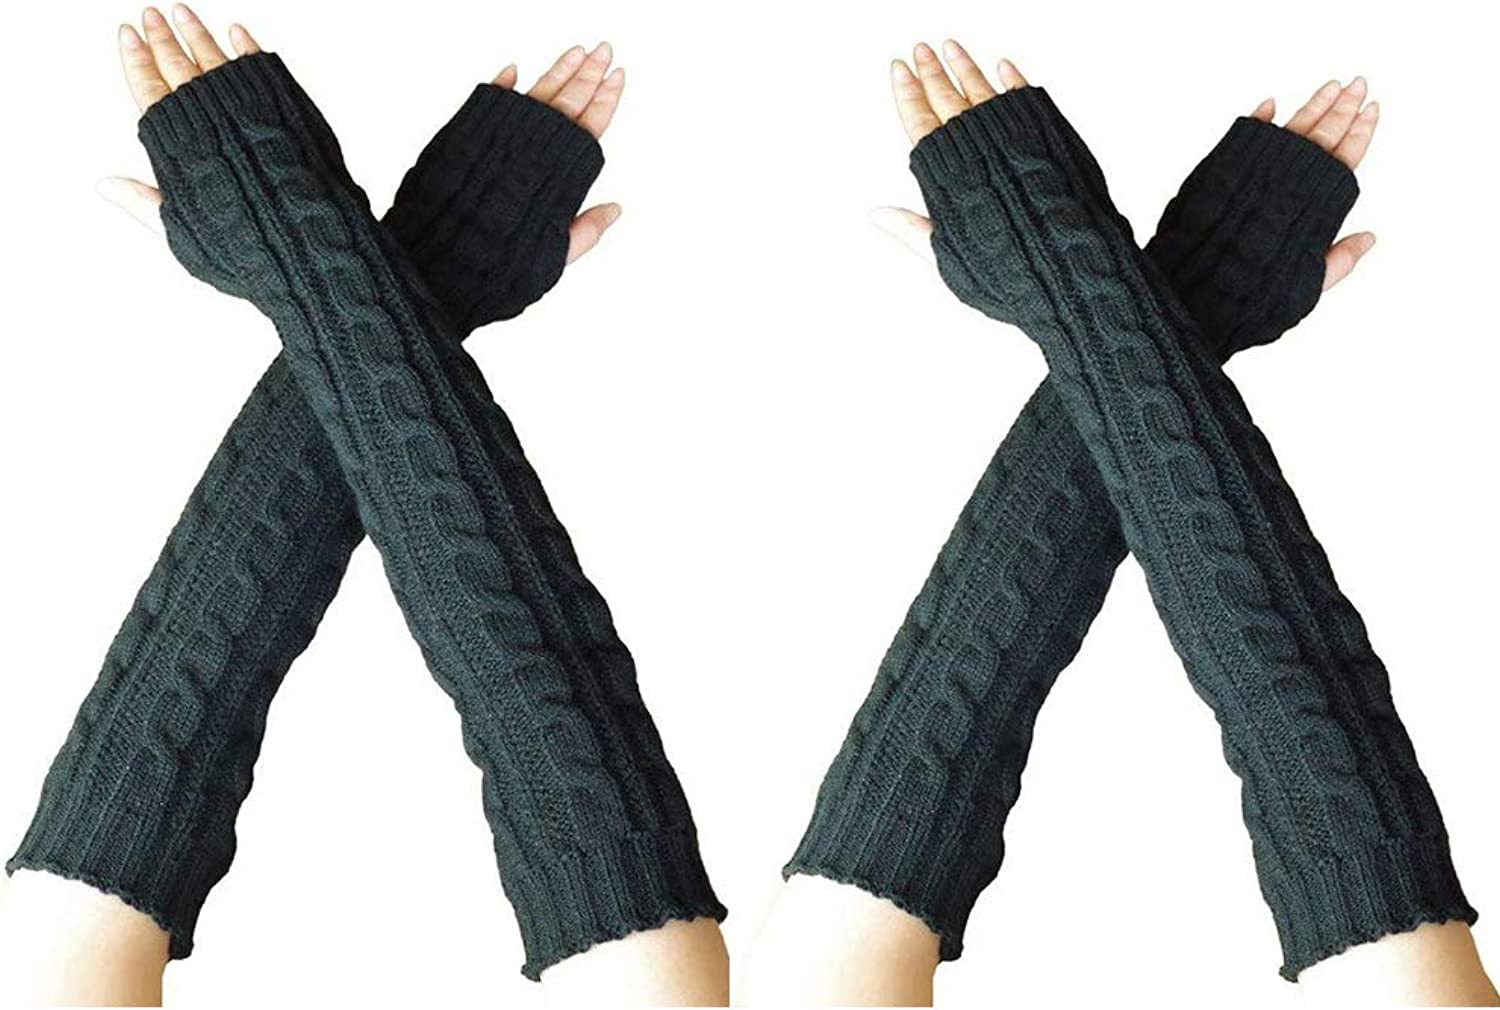 YACUN 2 Pairs Arm Warmers...